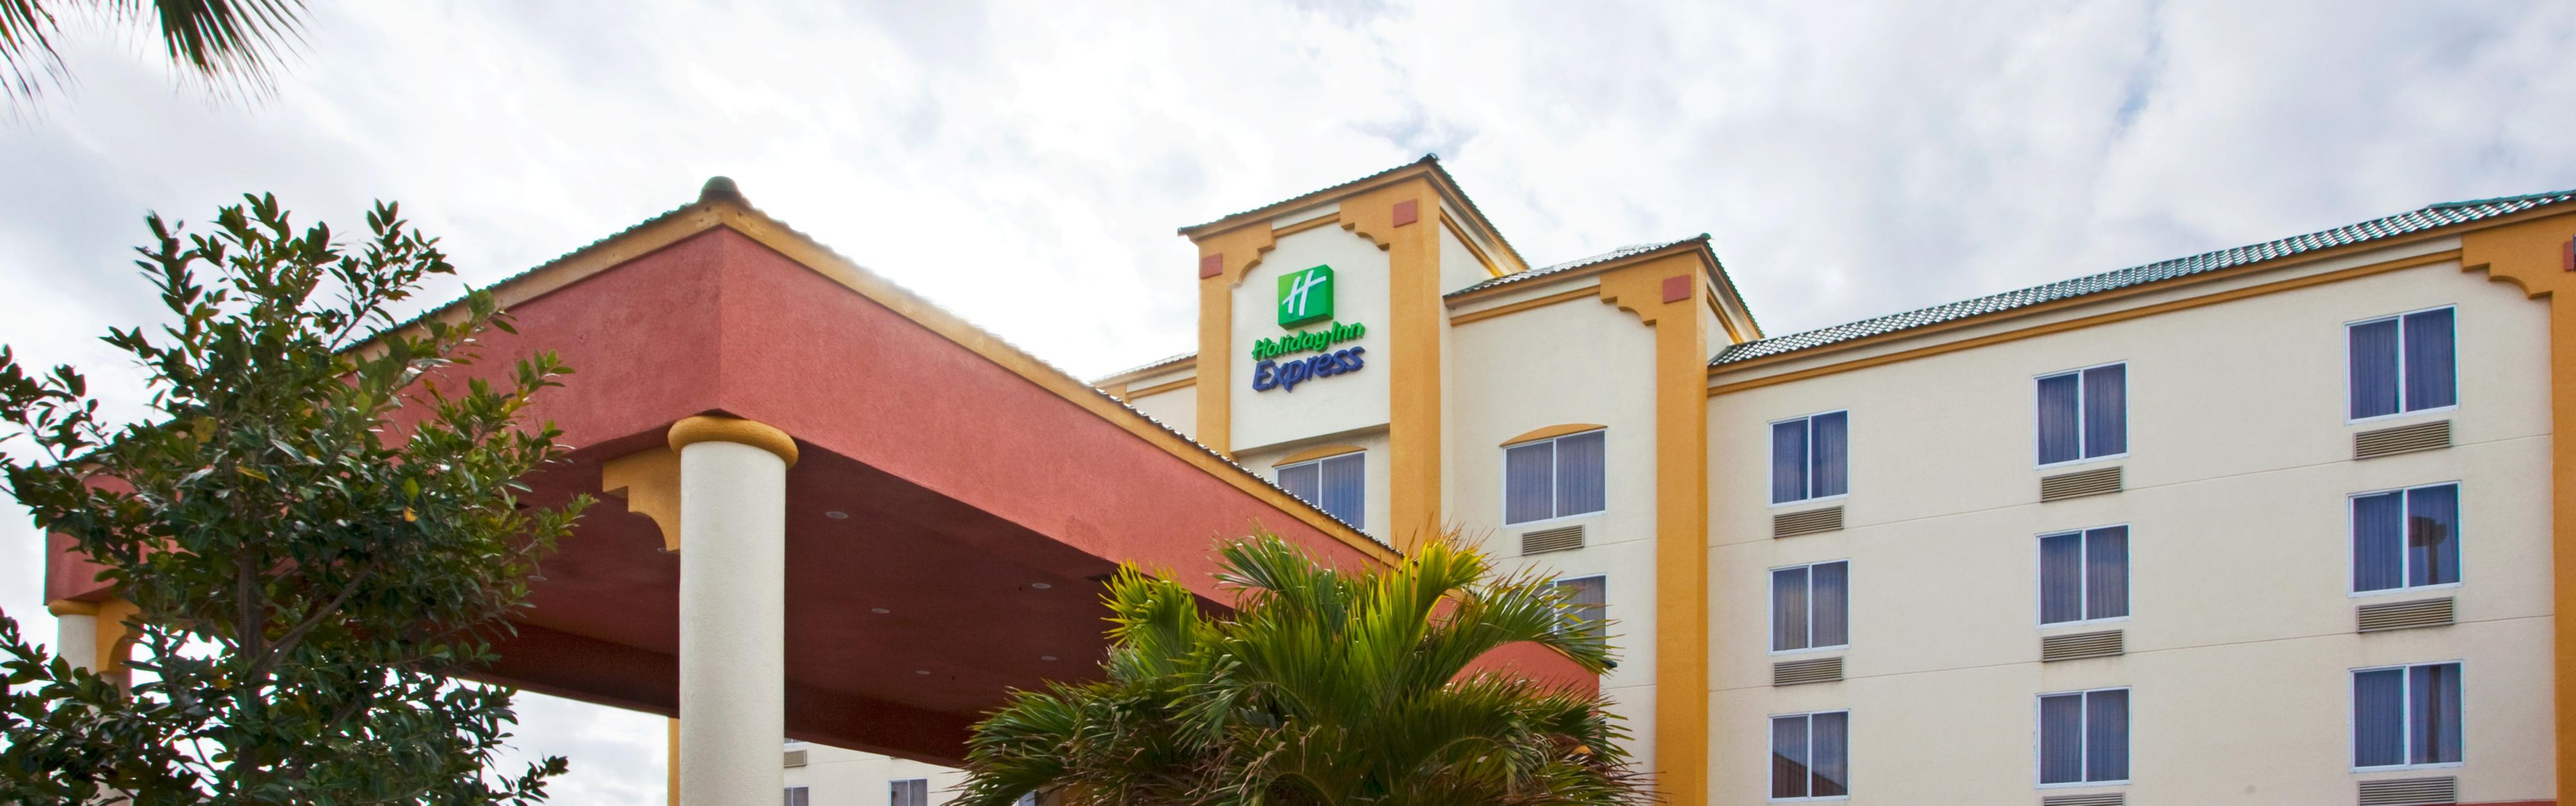 Holiday Inn Express & Suites Cocoa Beach image 0